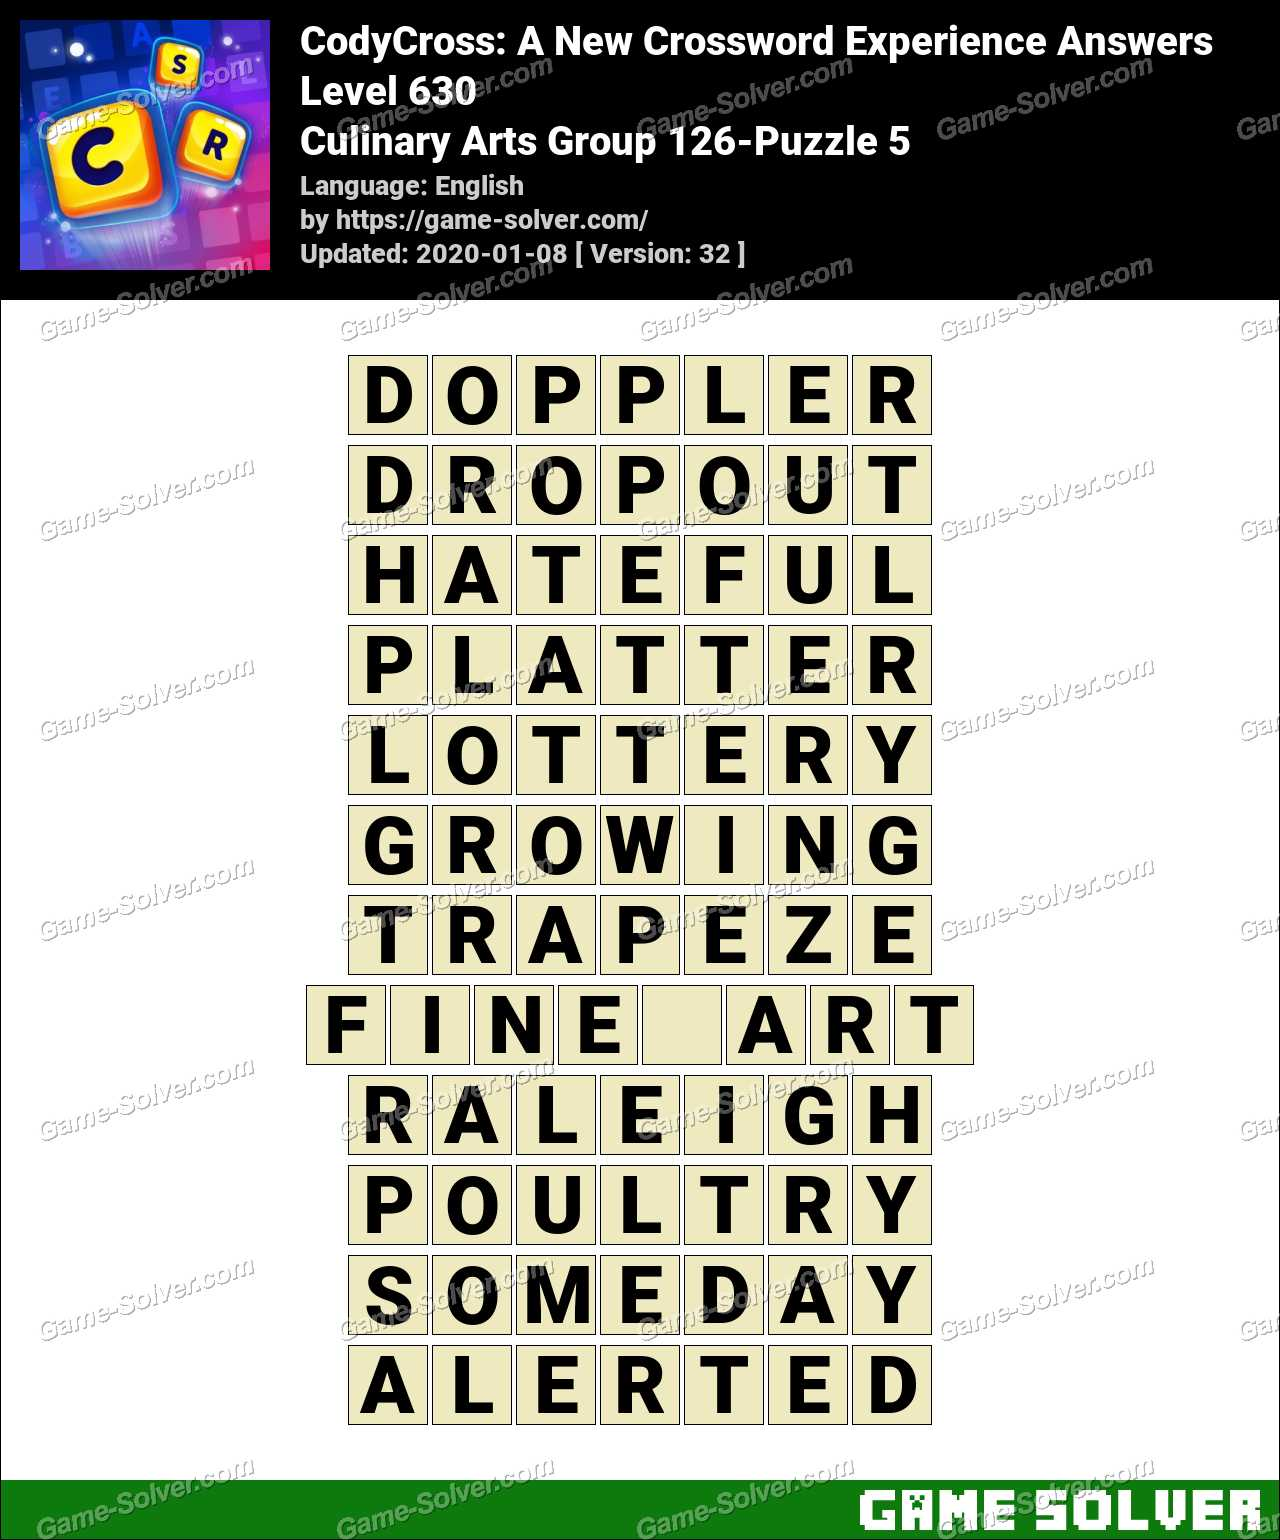 CodyCross Culinary Arts Group 126-Puzzle 5 Answers